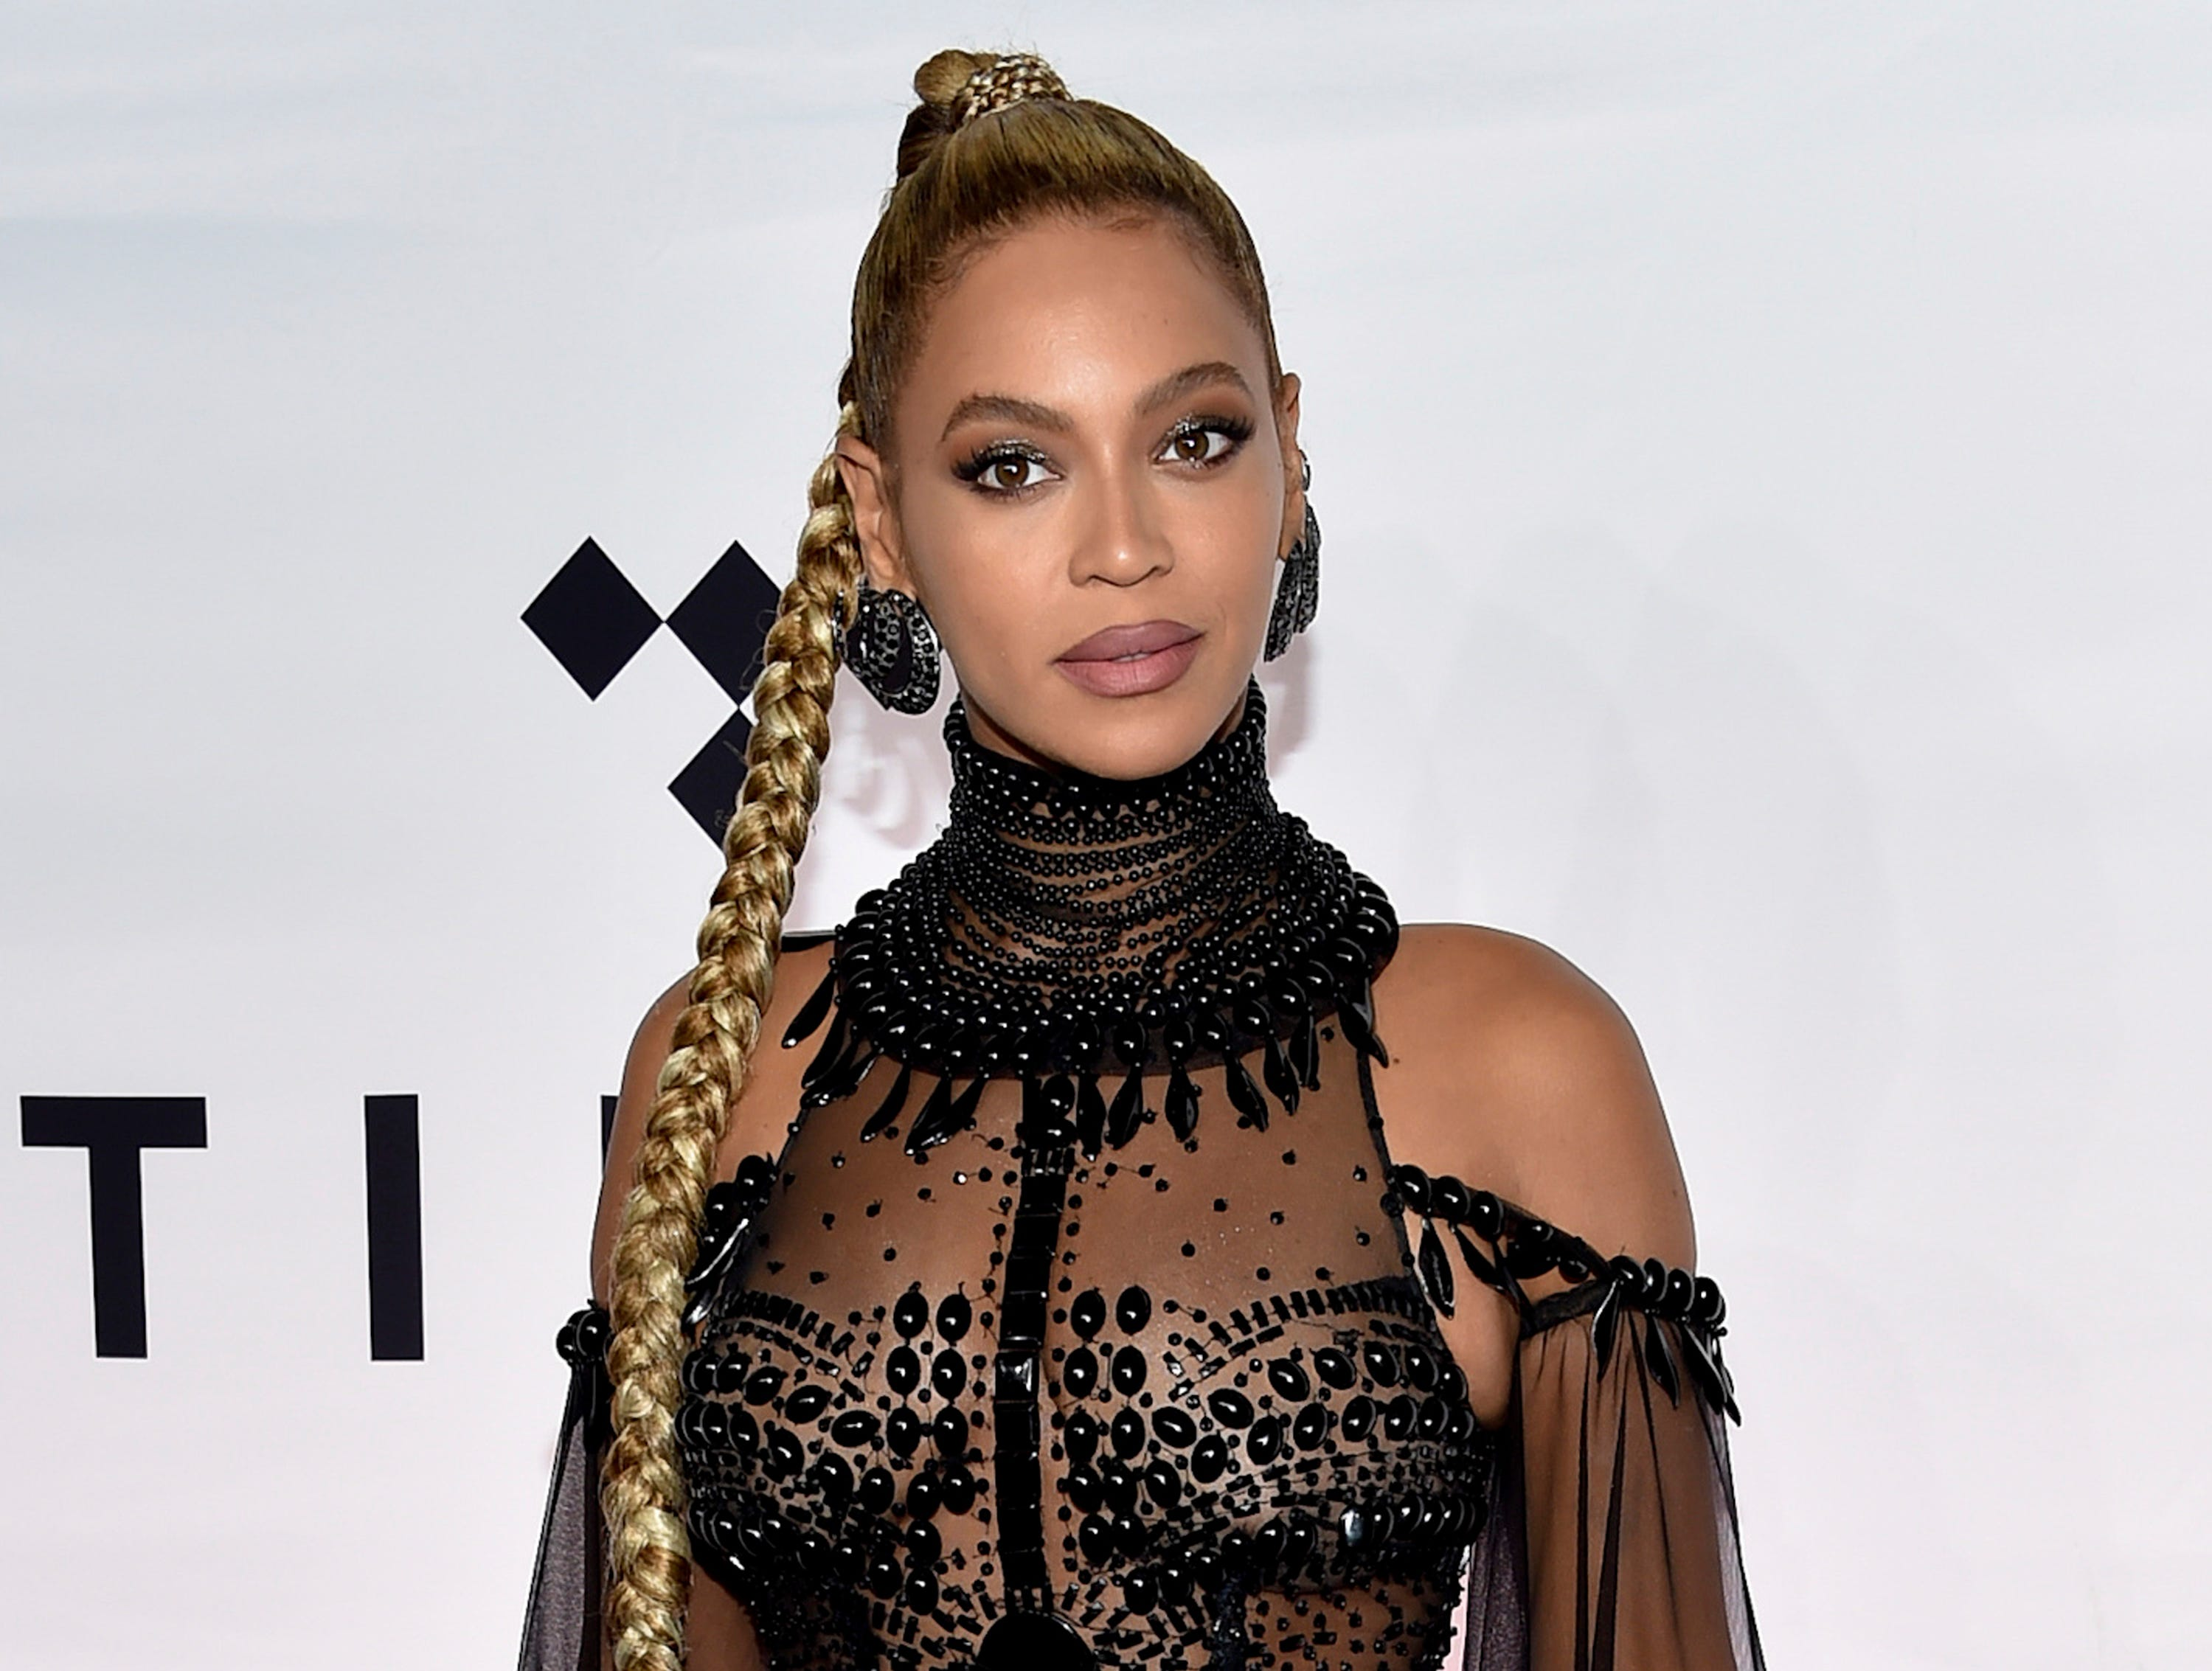 """FILE - In this Oct. 15, 2016, file photo, singer Beyonce Knowles attends the Tidal X: 1015 benefit concert in New York. Beyonce brought her star power to a pre-wedding party for the daughter of India's richest mogul. Beyonce performed Sunday, Dec. 9, 2018, and sang some of her hits such as """"Crazy In Love"""" and """"Perfect."""" Guests included Hillary Clinton and a host of Bollywood stars in the historic Indian city of Udaipur. (Photo by Evan Agostini/Invision/AP, File) ORG XMIT: NYAG102"""